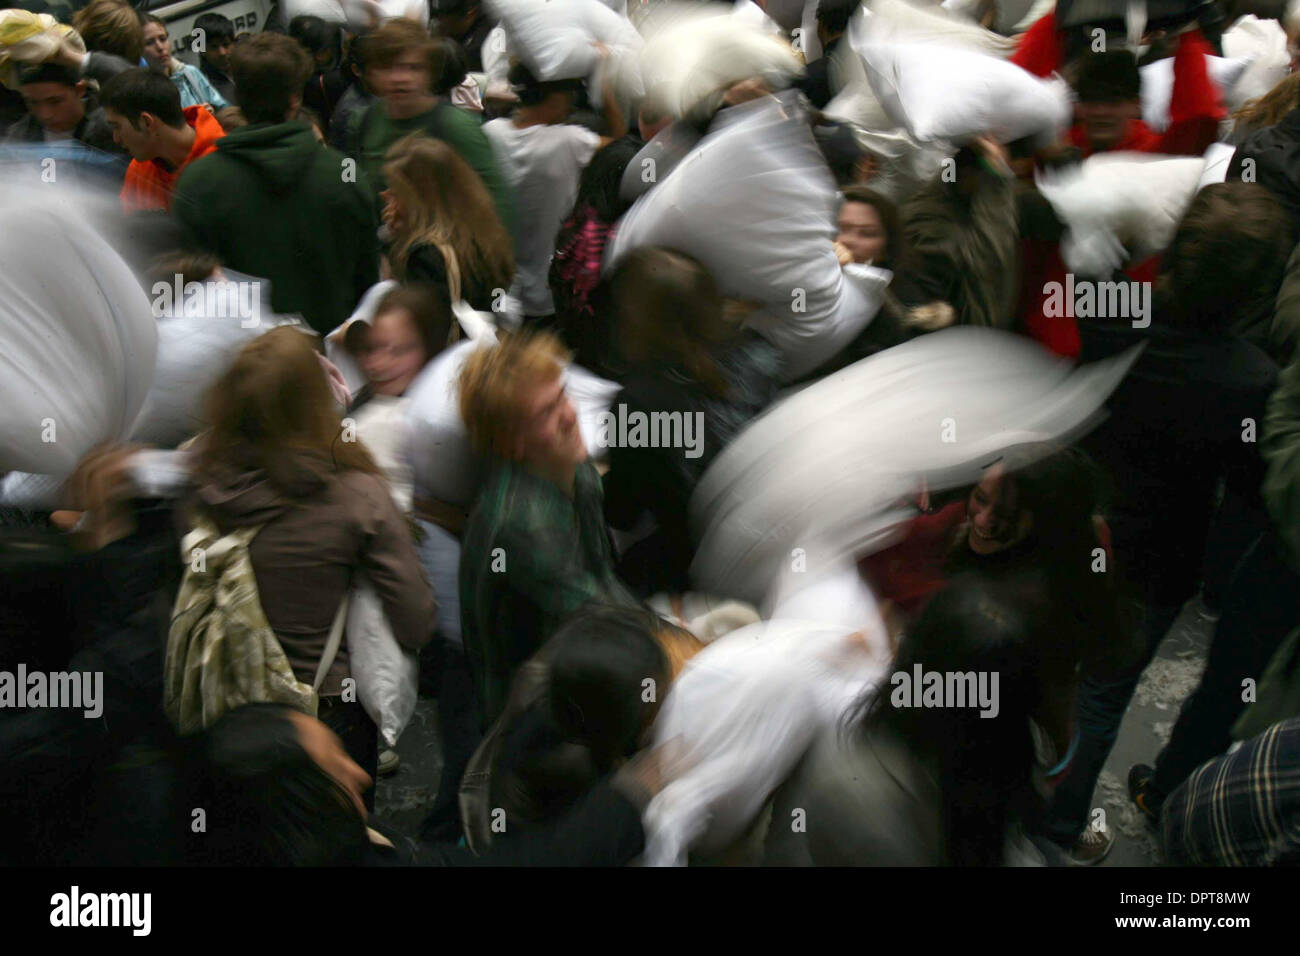 Apr 04, 2009 - New York, New York, USA - Revelers enjoy a massive pillow fight during the  International Pillow Fighting Day in Wall Street in Manhattan. People in over 25 cities around the world wield cushions for the massive battle as a celebration of public space.  (Credit Image: © Mehmet Demirci/ZUMA Press) - Stock Image